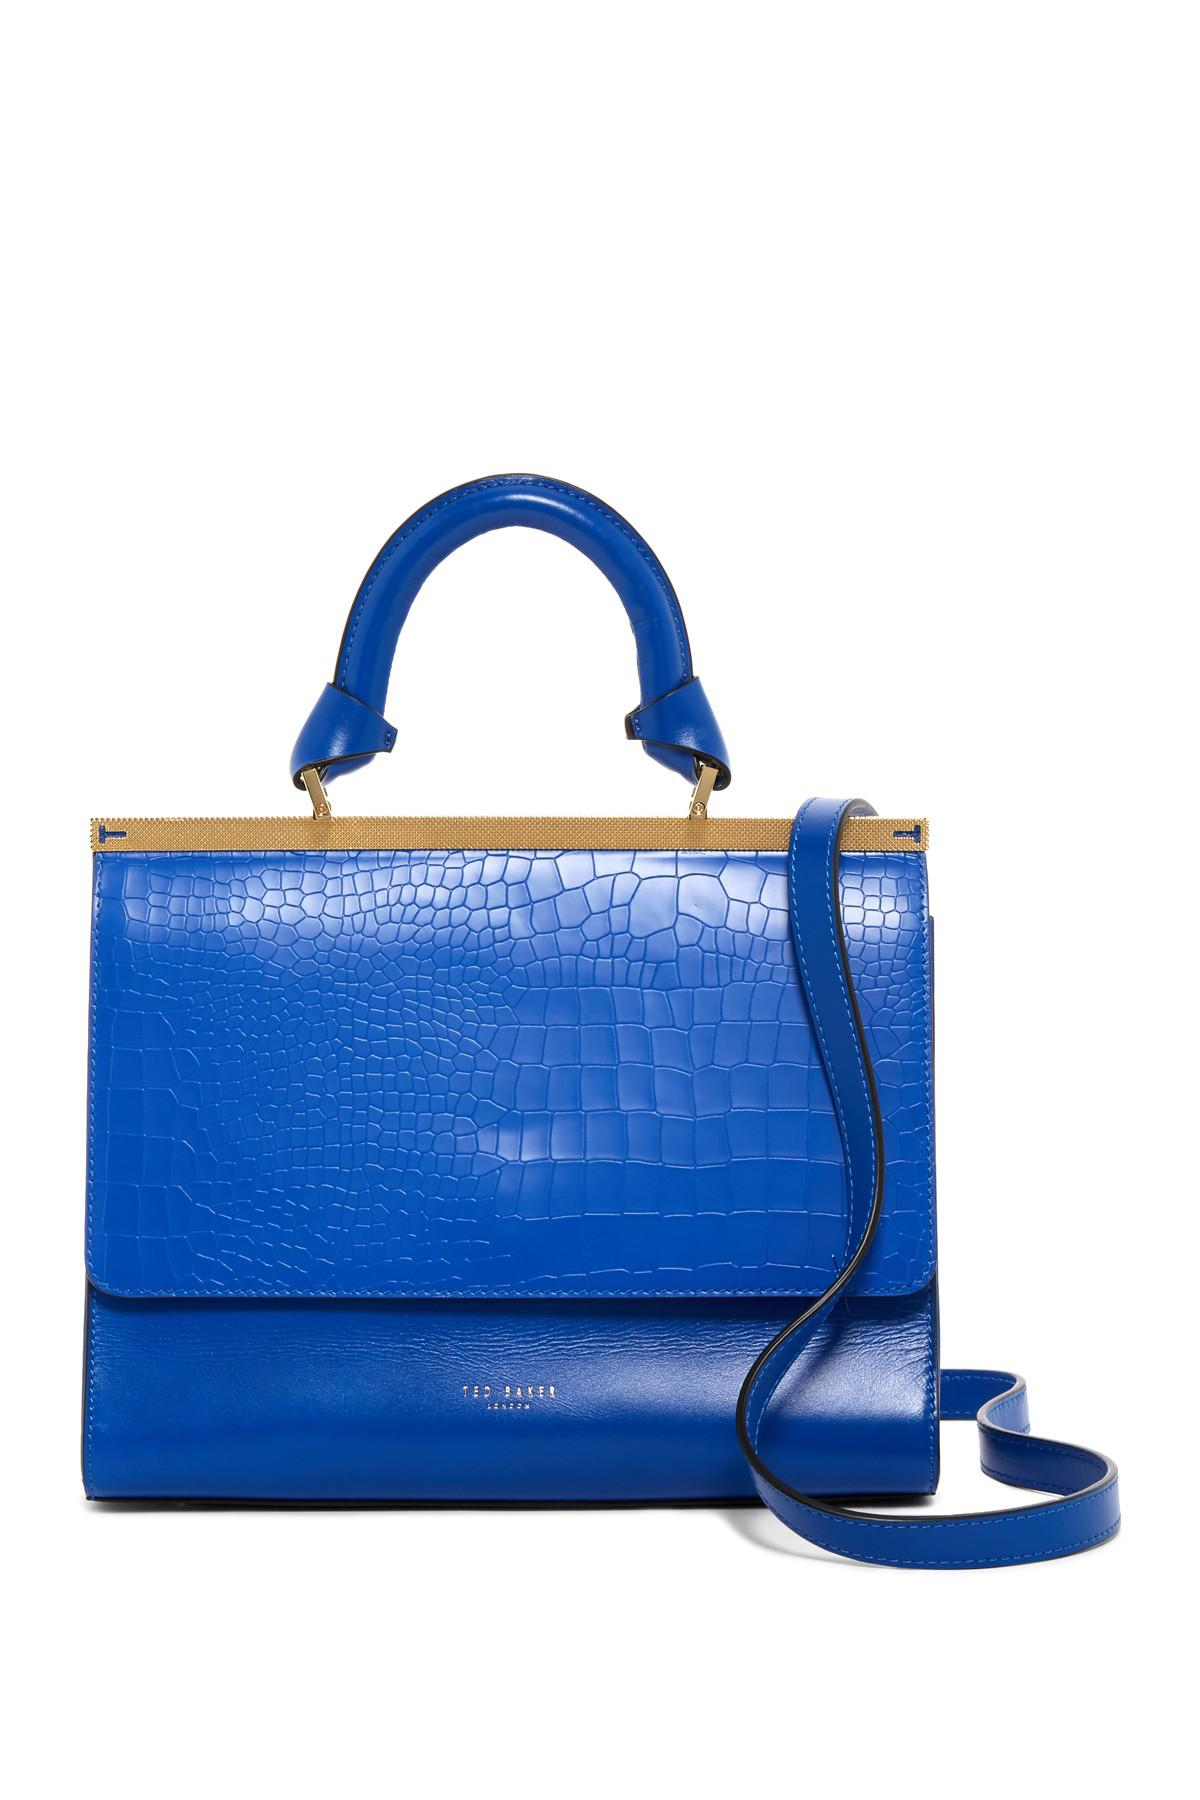 b0fa6d336933 Ted Baker Maven Croc Embossed Leather Satchel in Blue - Lyst